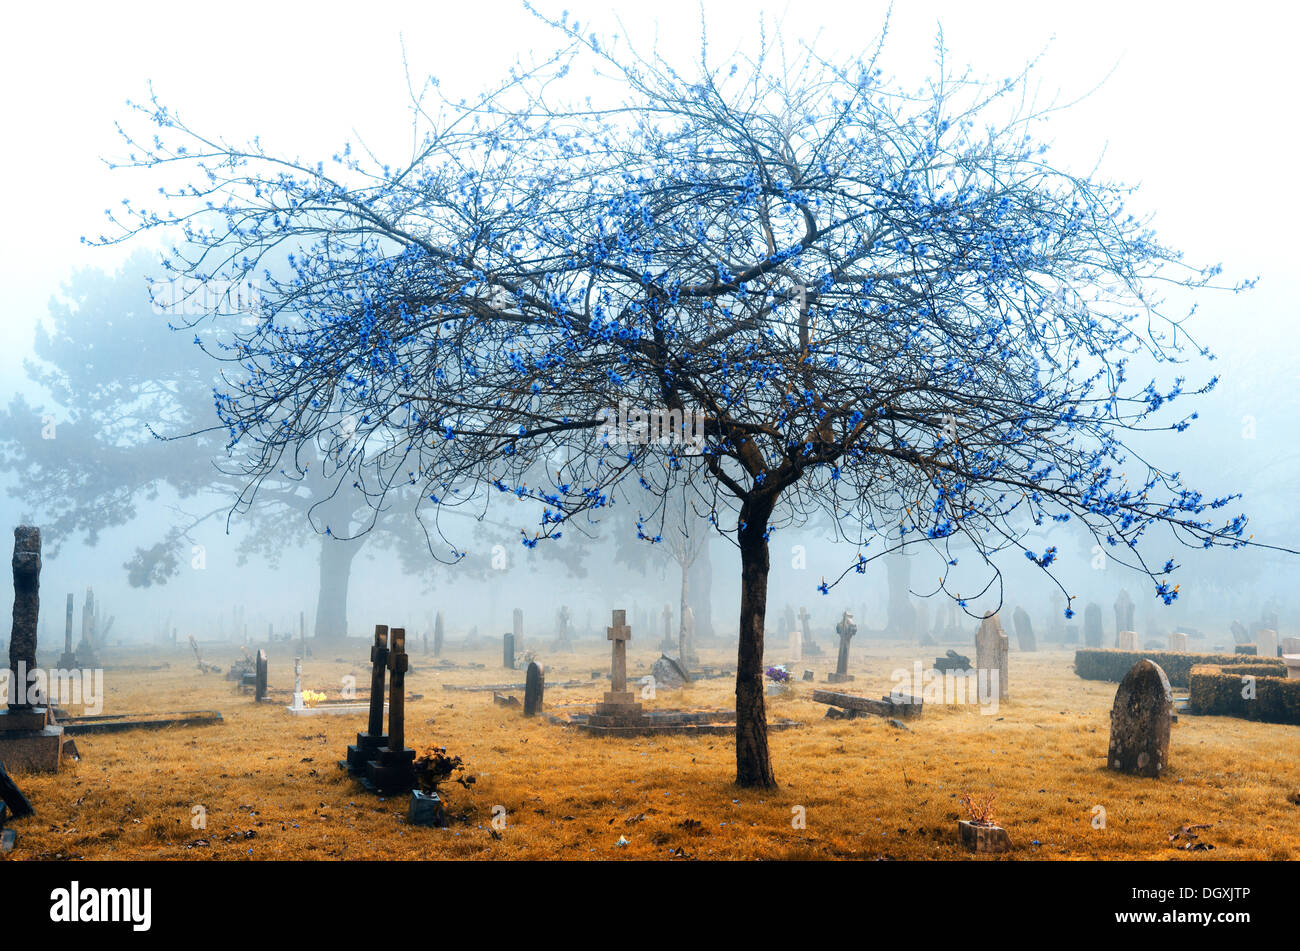 A foggy cemetery in infrared - Stock Image